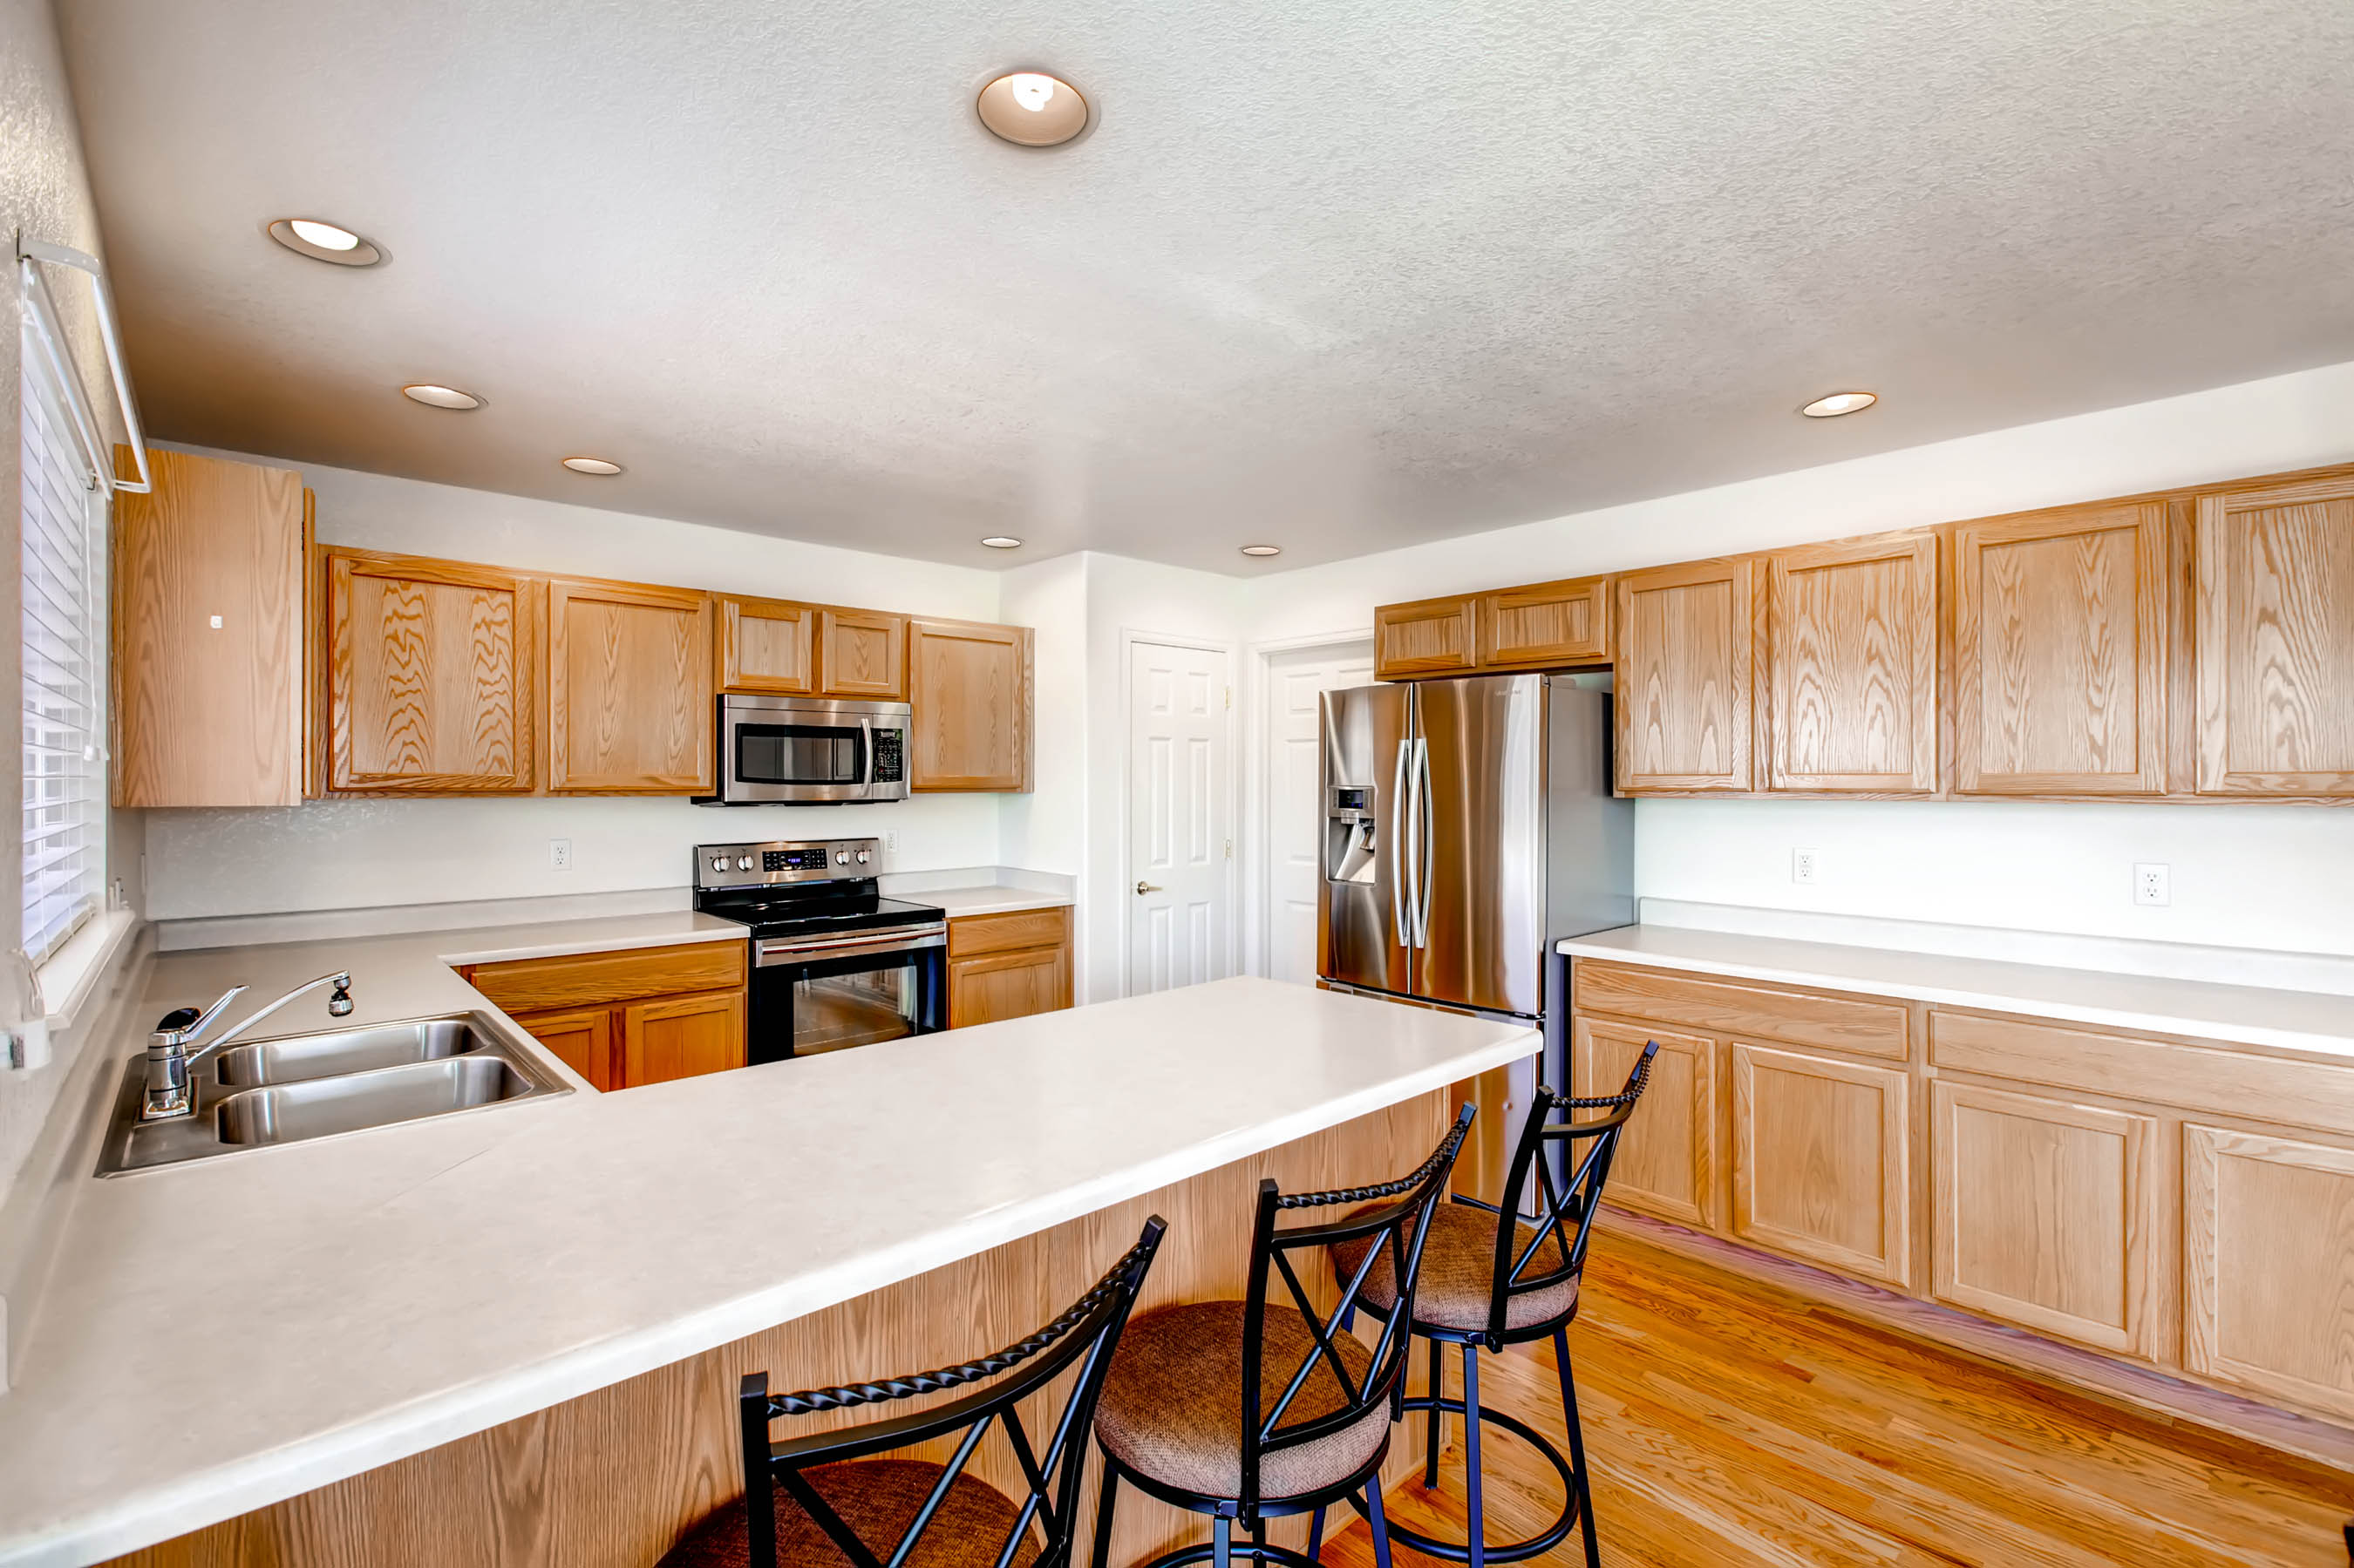 Goodfit homes east quincy highlands home for sale for Perfect kitchens quincy